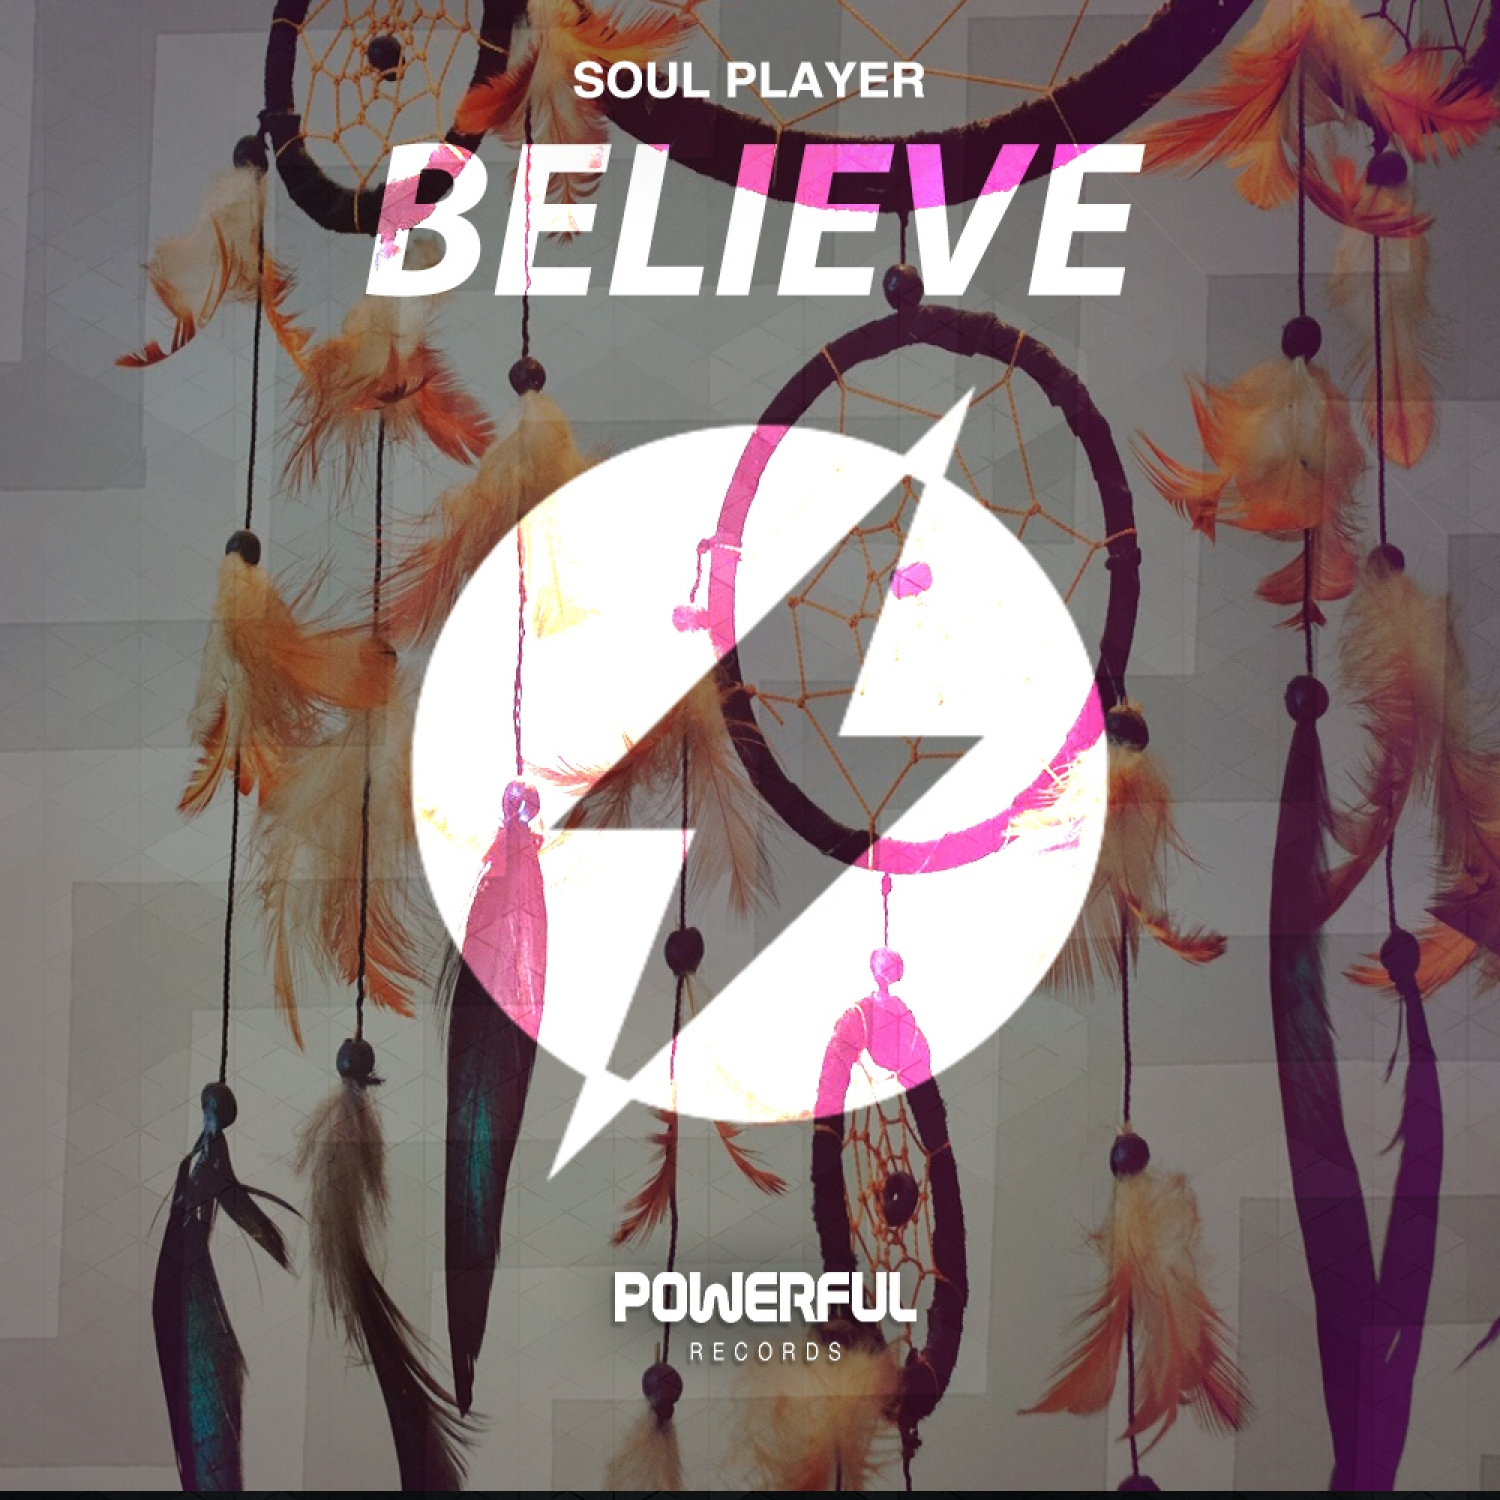 André Paiva & Soul Player & Angelo Nogueira & Jeanne Rubbo - Find You Tonight (feat. Angelo Nogueira & Jeanne Rubbo) (Original Mix)